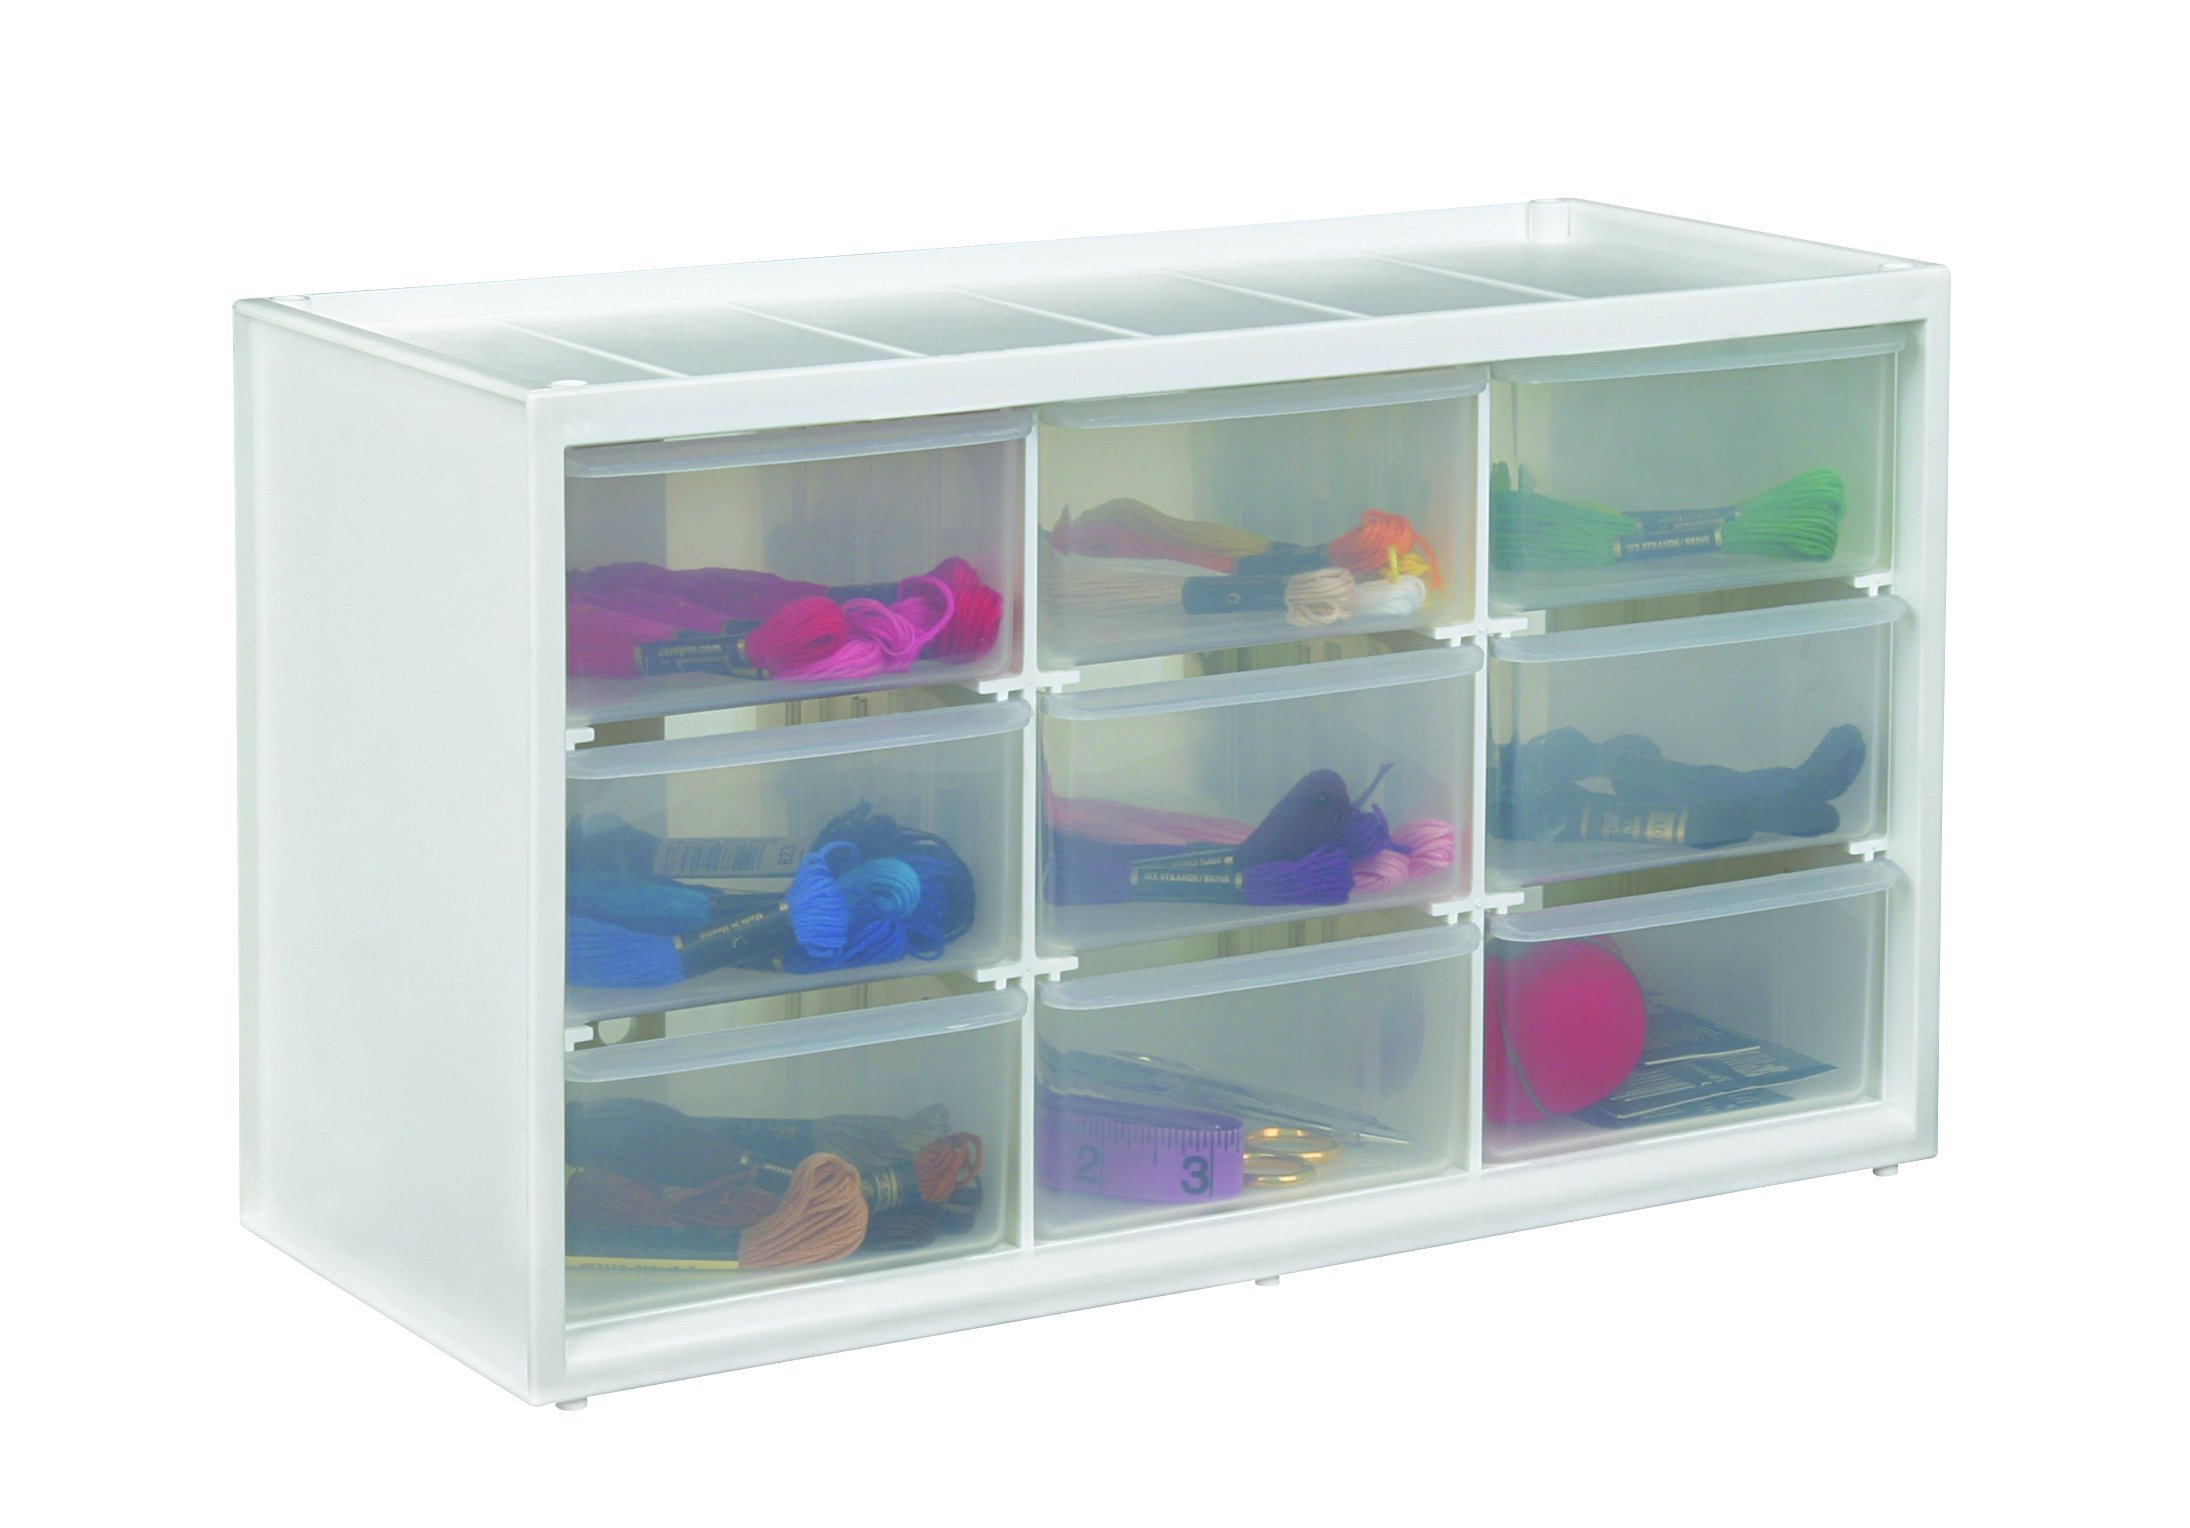 ArtBin Store-In-Drawer Cabinet; 9 Art and Craft Supply Storage Drawers, 6809PC